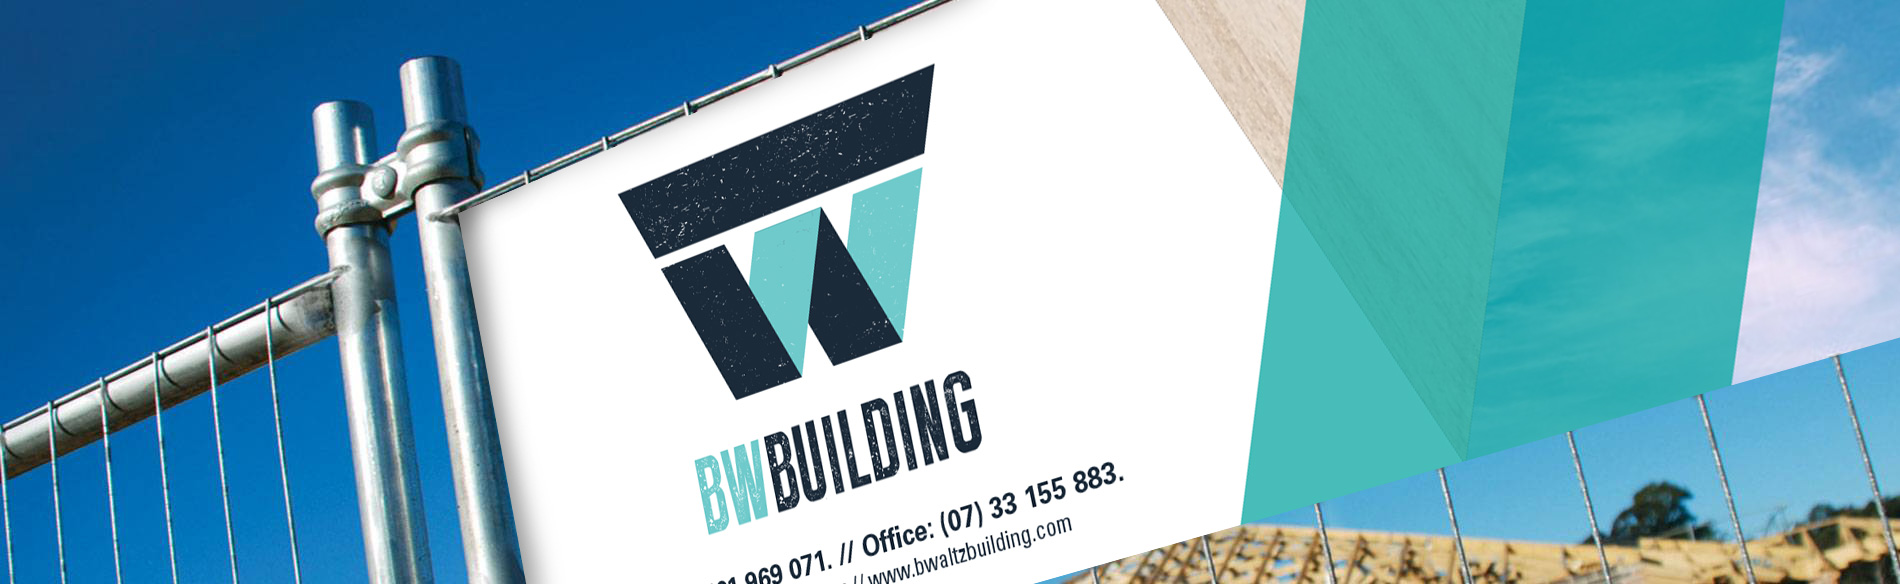 BWBuilding, Brisbane, Building, Retailored, creative, design, graphic design